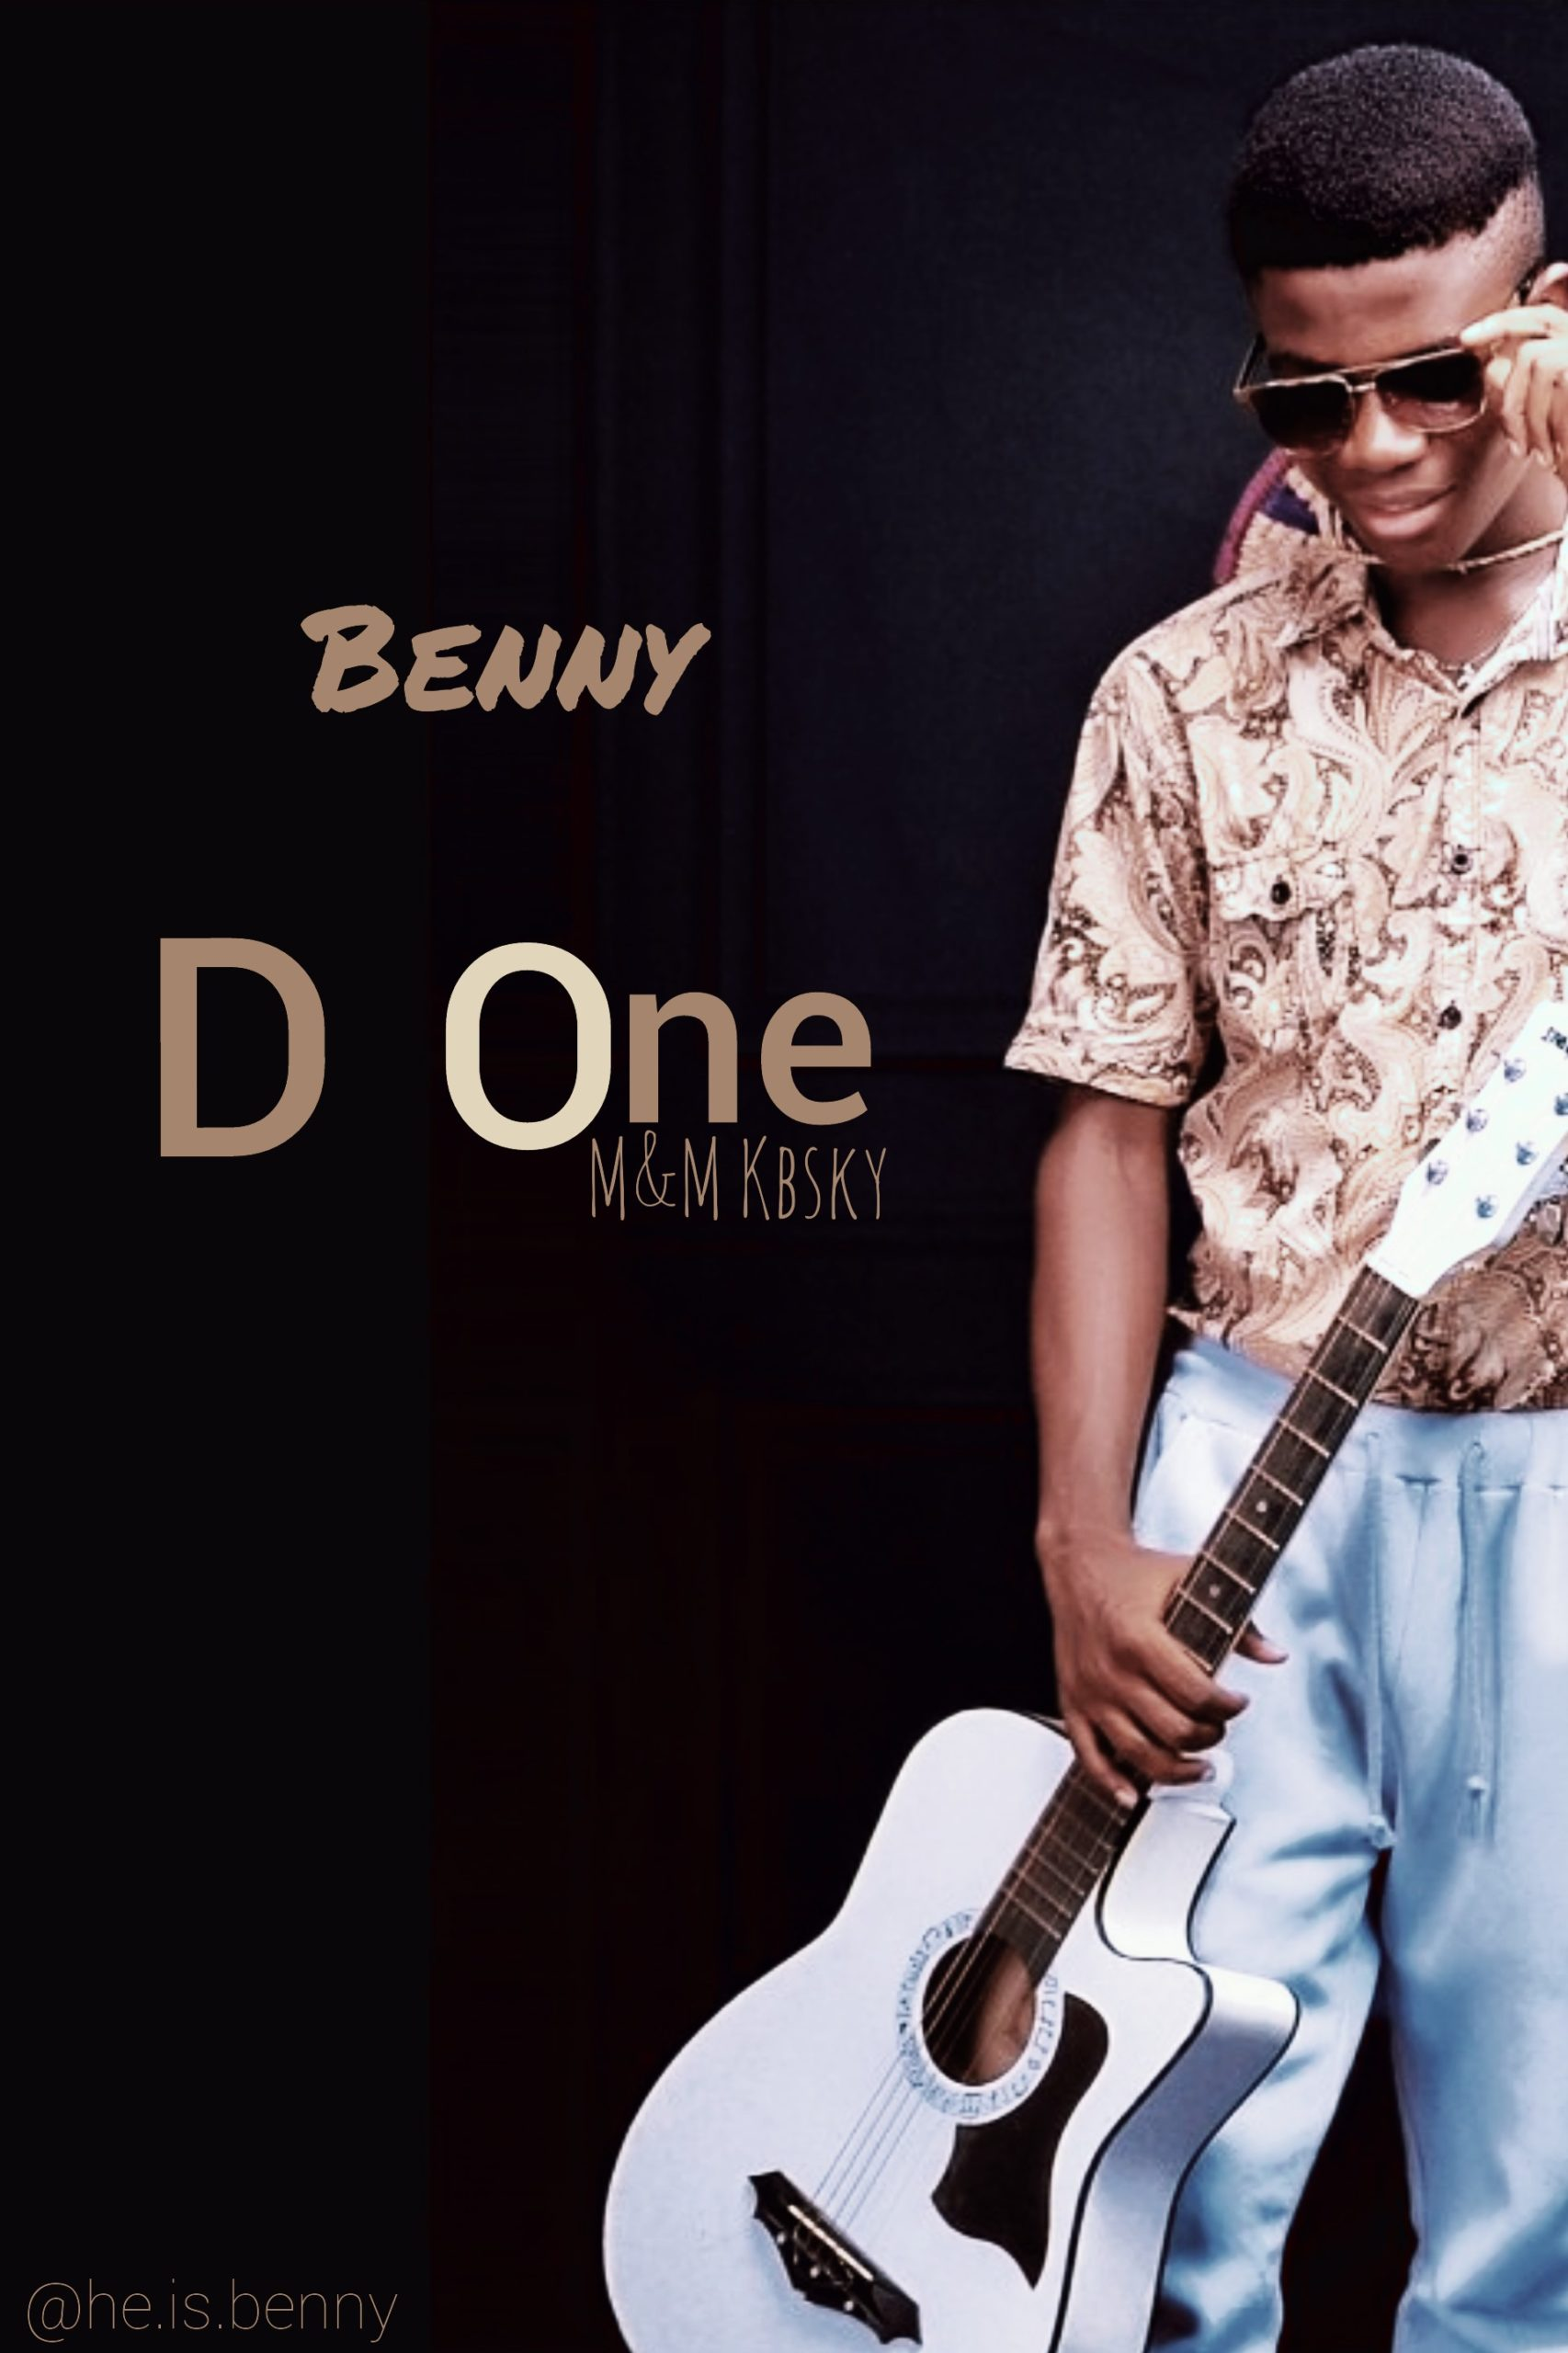 Benny – D One